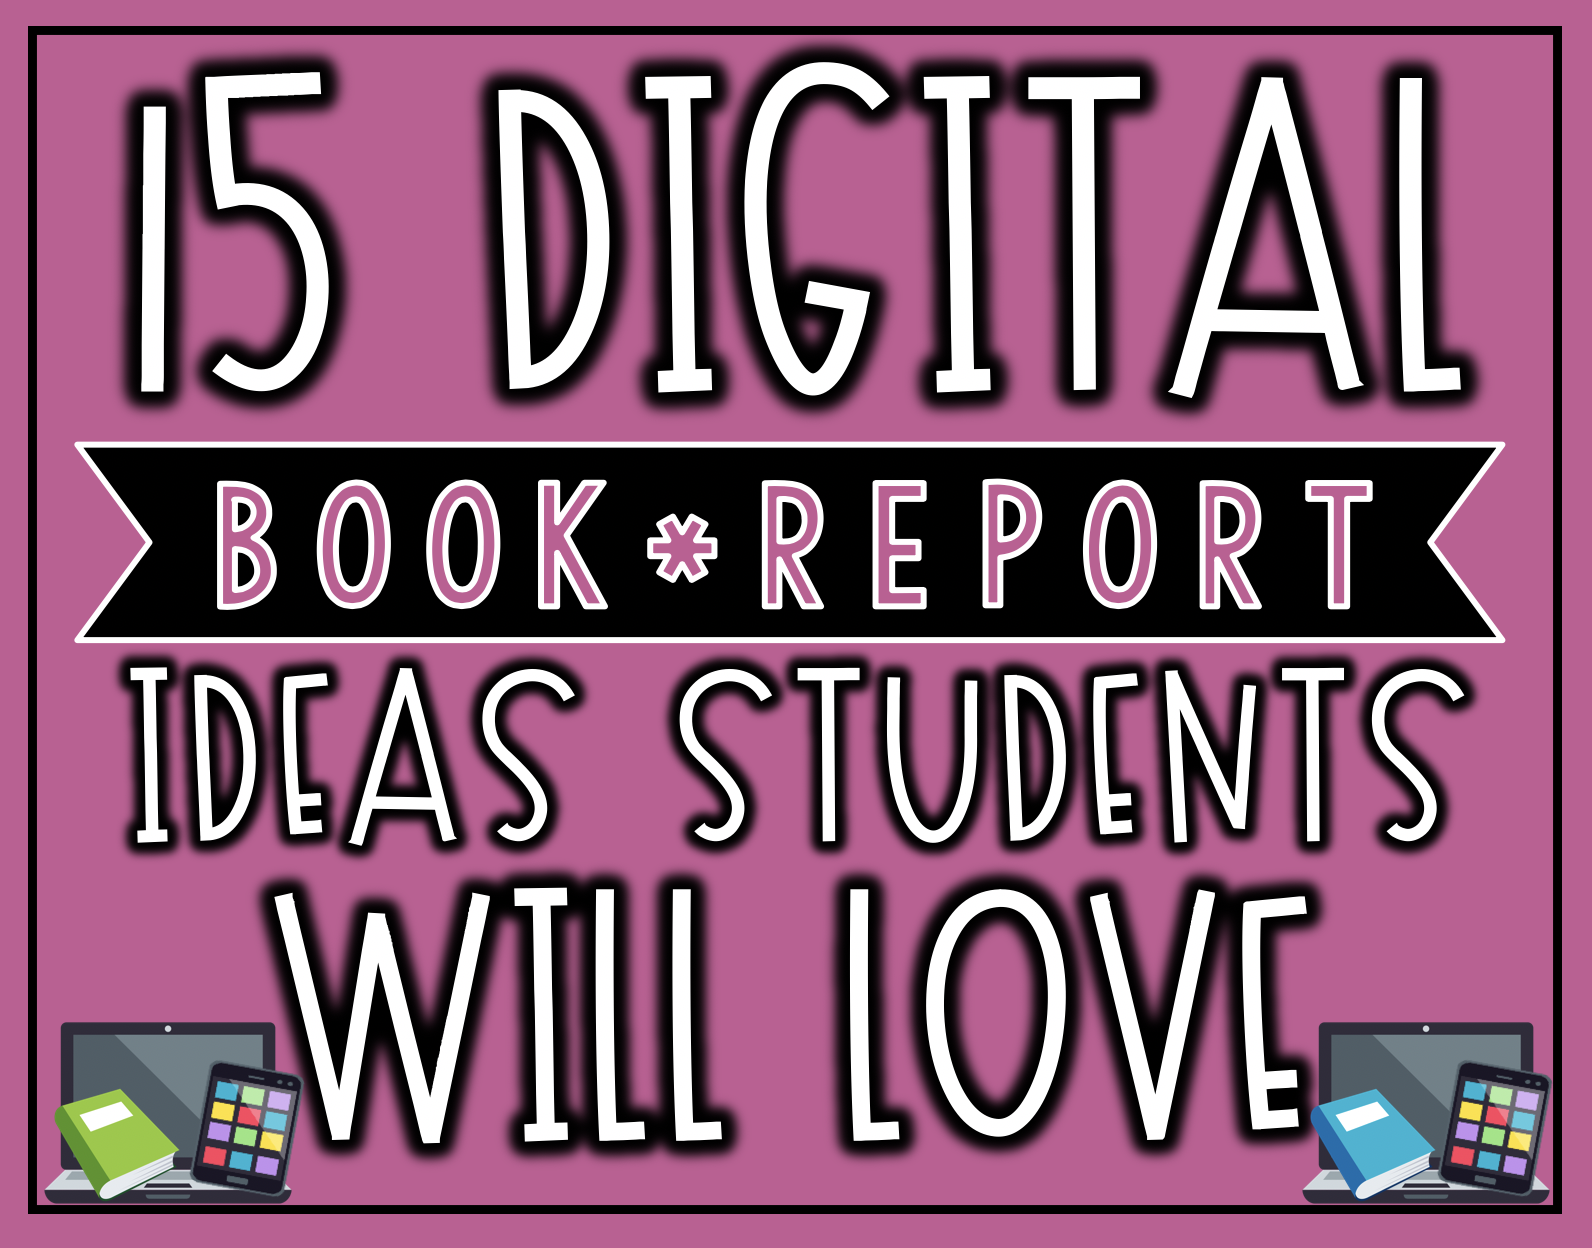 medium resolution of 15 Digital Book Report Ideas Your Students Will LOVE   The Techie Teacher®